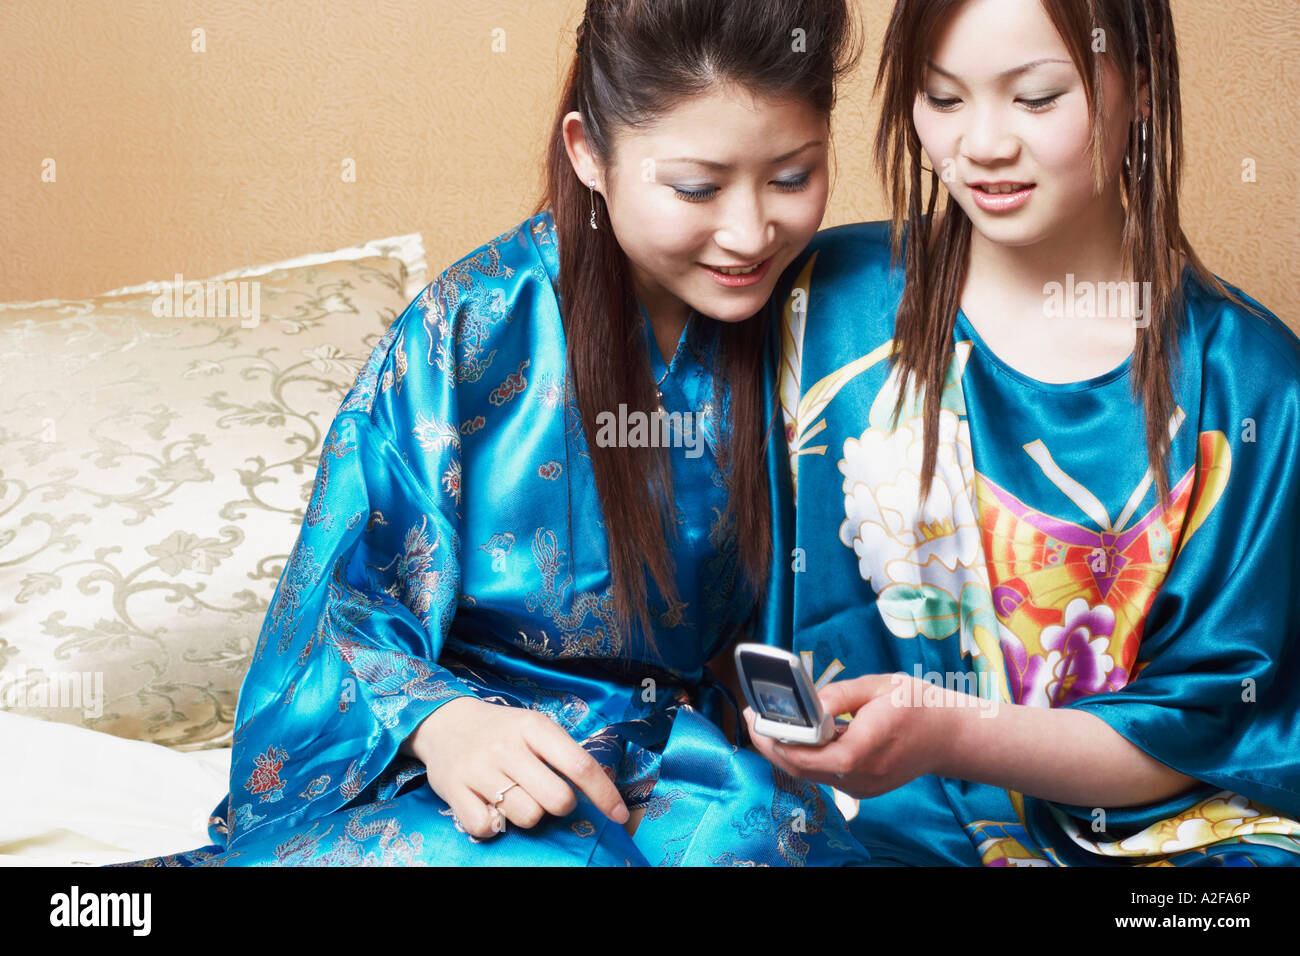 Close-up of a young woman sitting with a teenage girl looking at a mobile phone - Stock Image